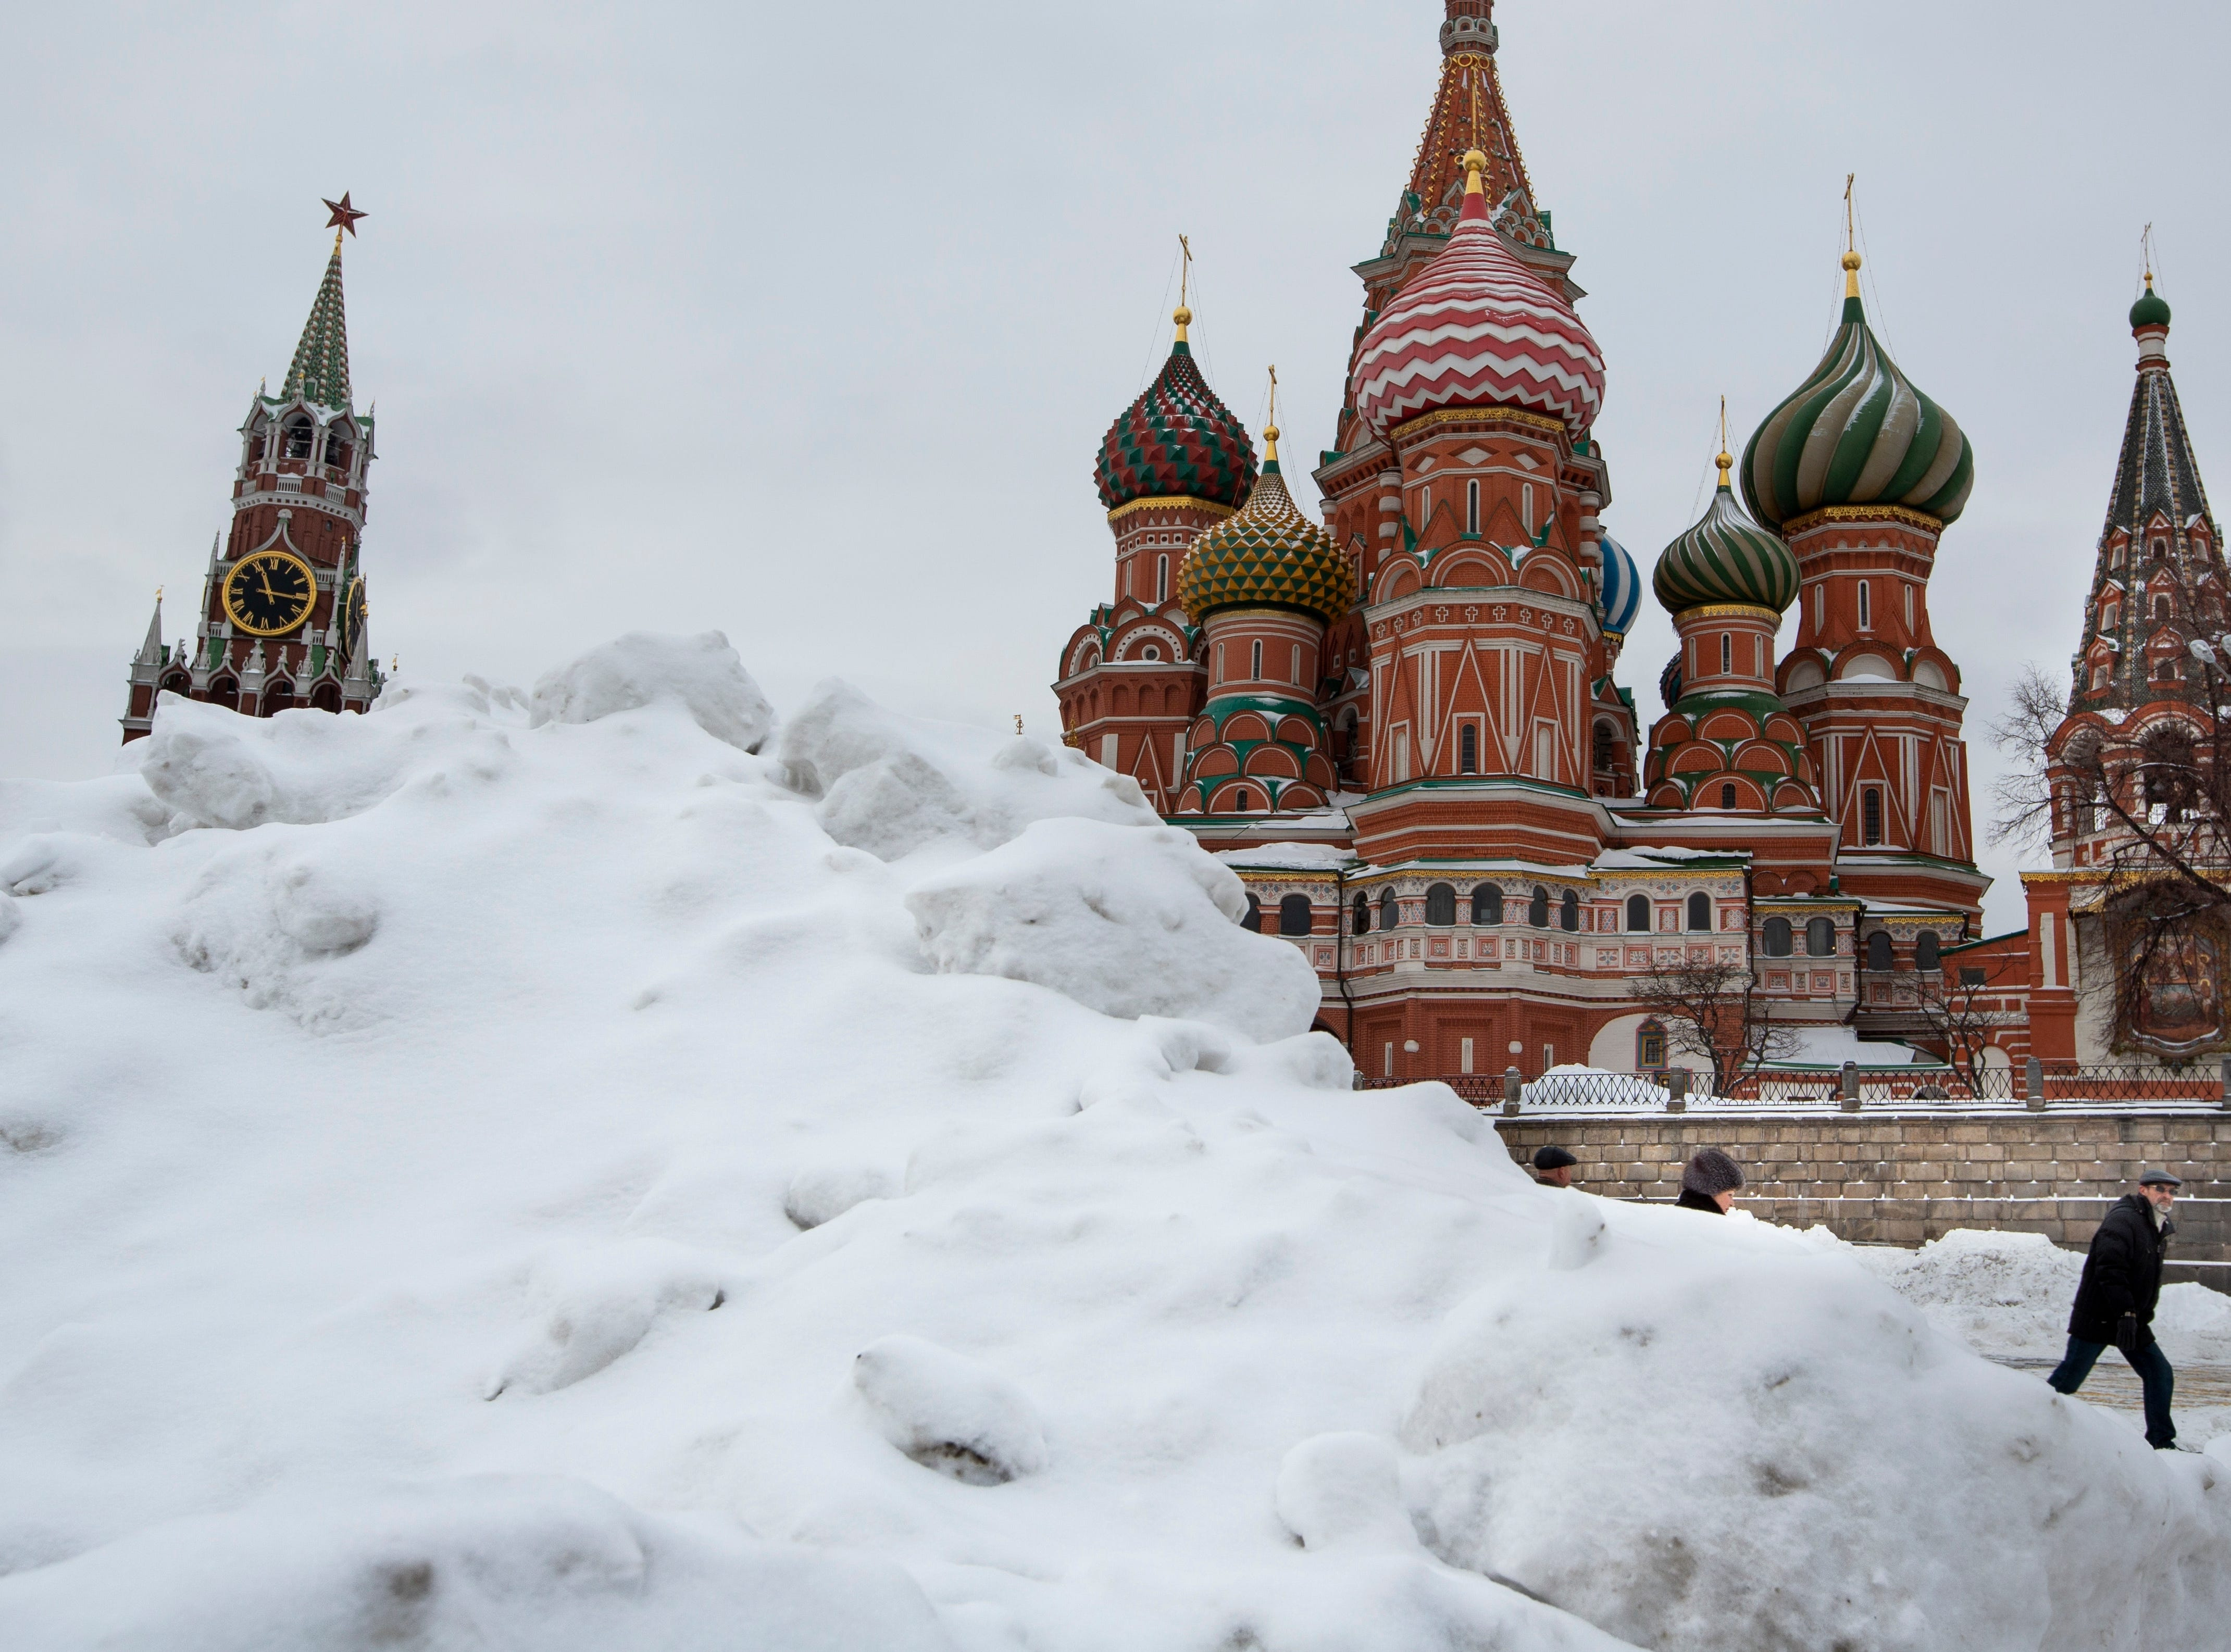 Snow covered Red Square with the Spasskaya Tower, and St. Basil's Cathedral after a snowstorm in Moscow, Russia, Monday, Jan. 28, 2019.